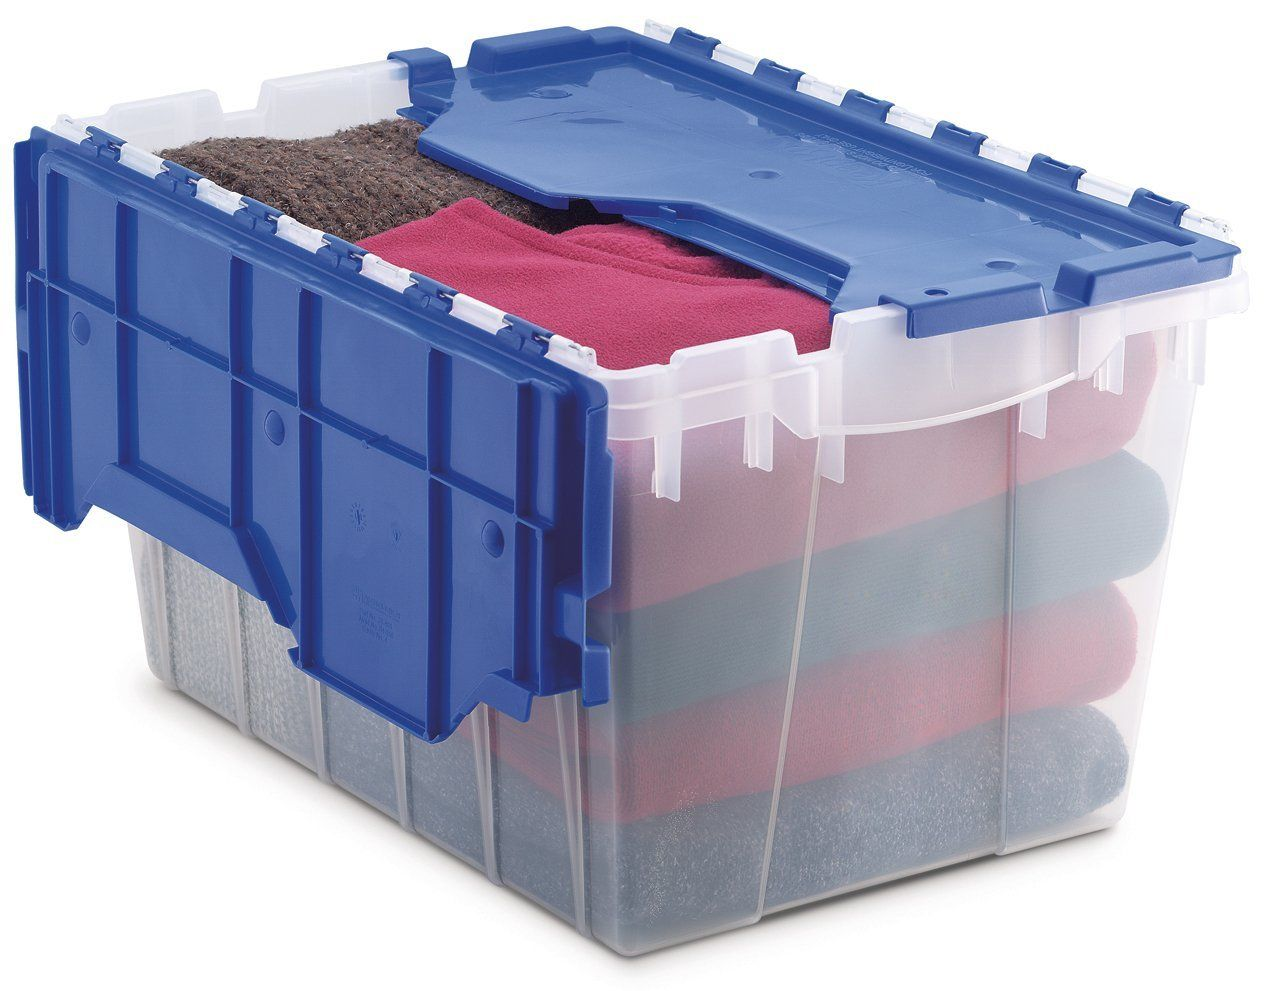 Akro Mils 66486 Cldbl 12 Gallon Plastic Storage Keepbox With Attached Lid 21 1 2 Inch By 15 Inc Plastic Container Storage Plastic Storage Plastic Storage Bins